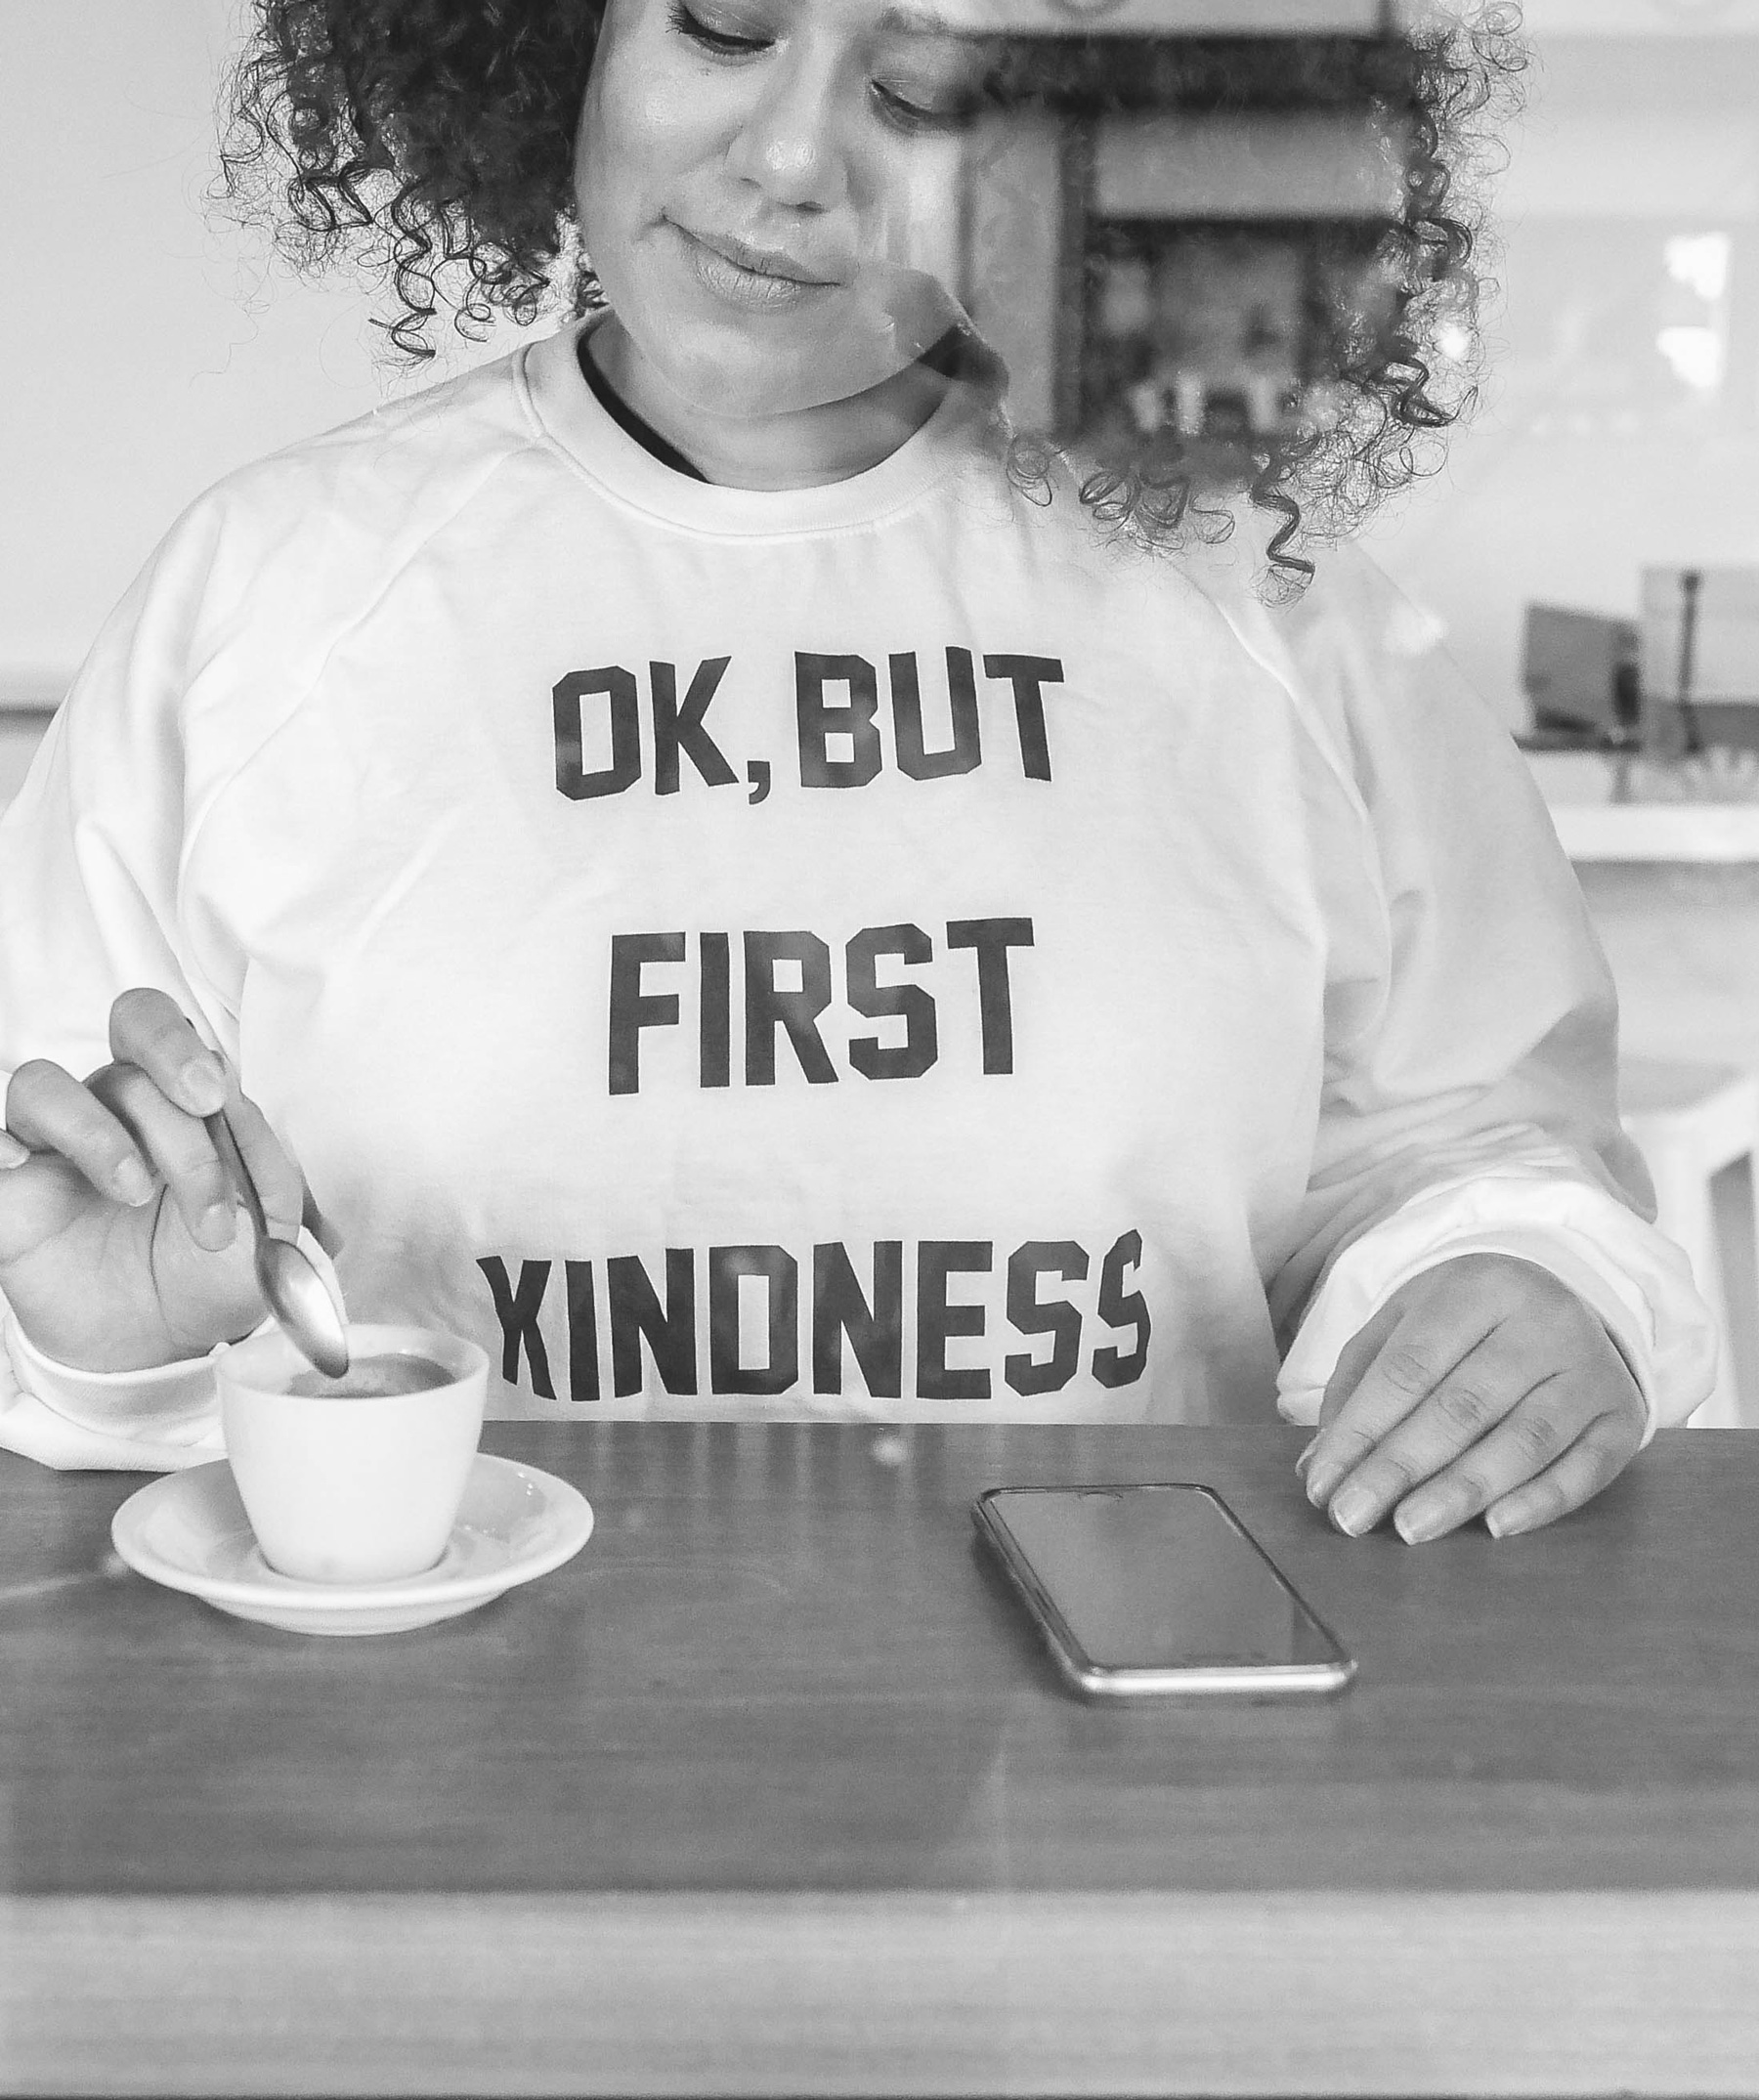 Ok, but first kindness